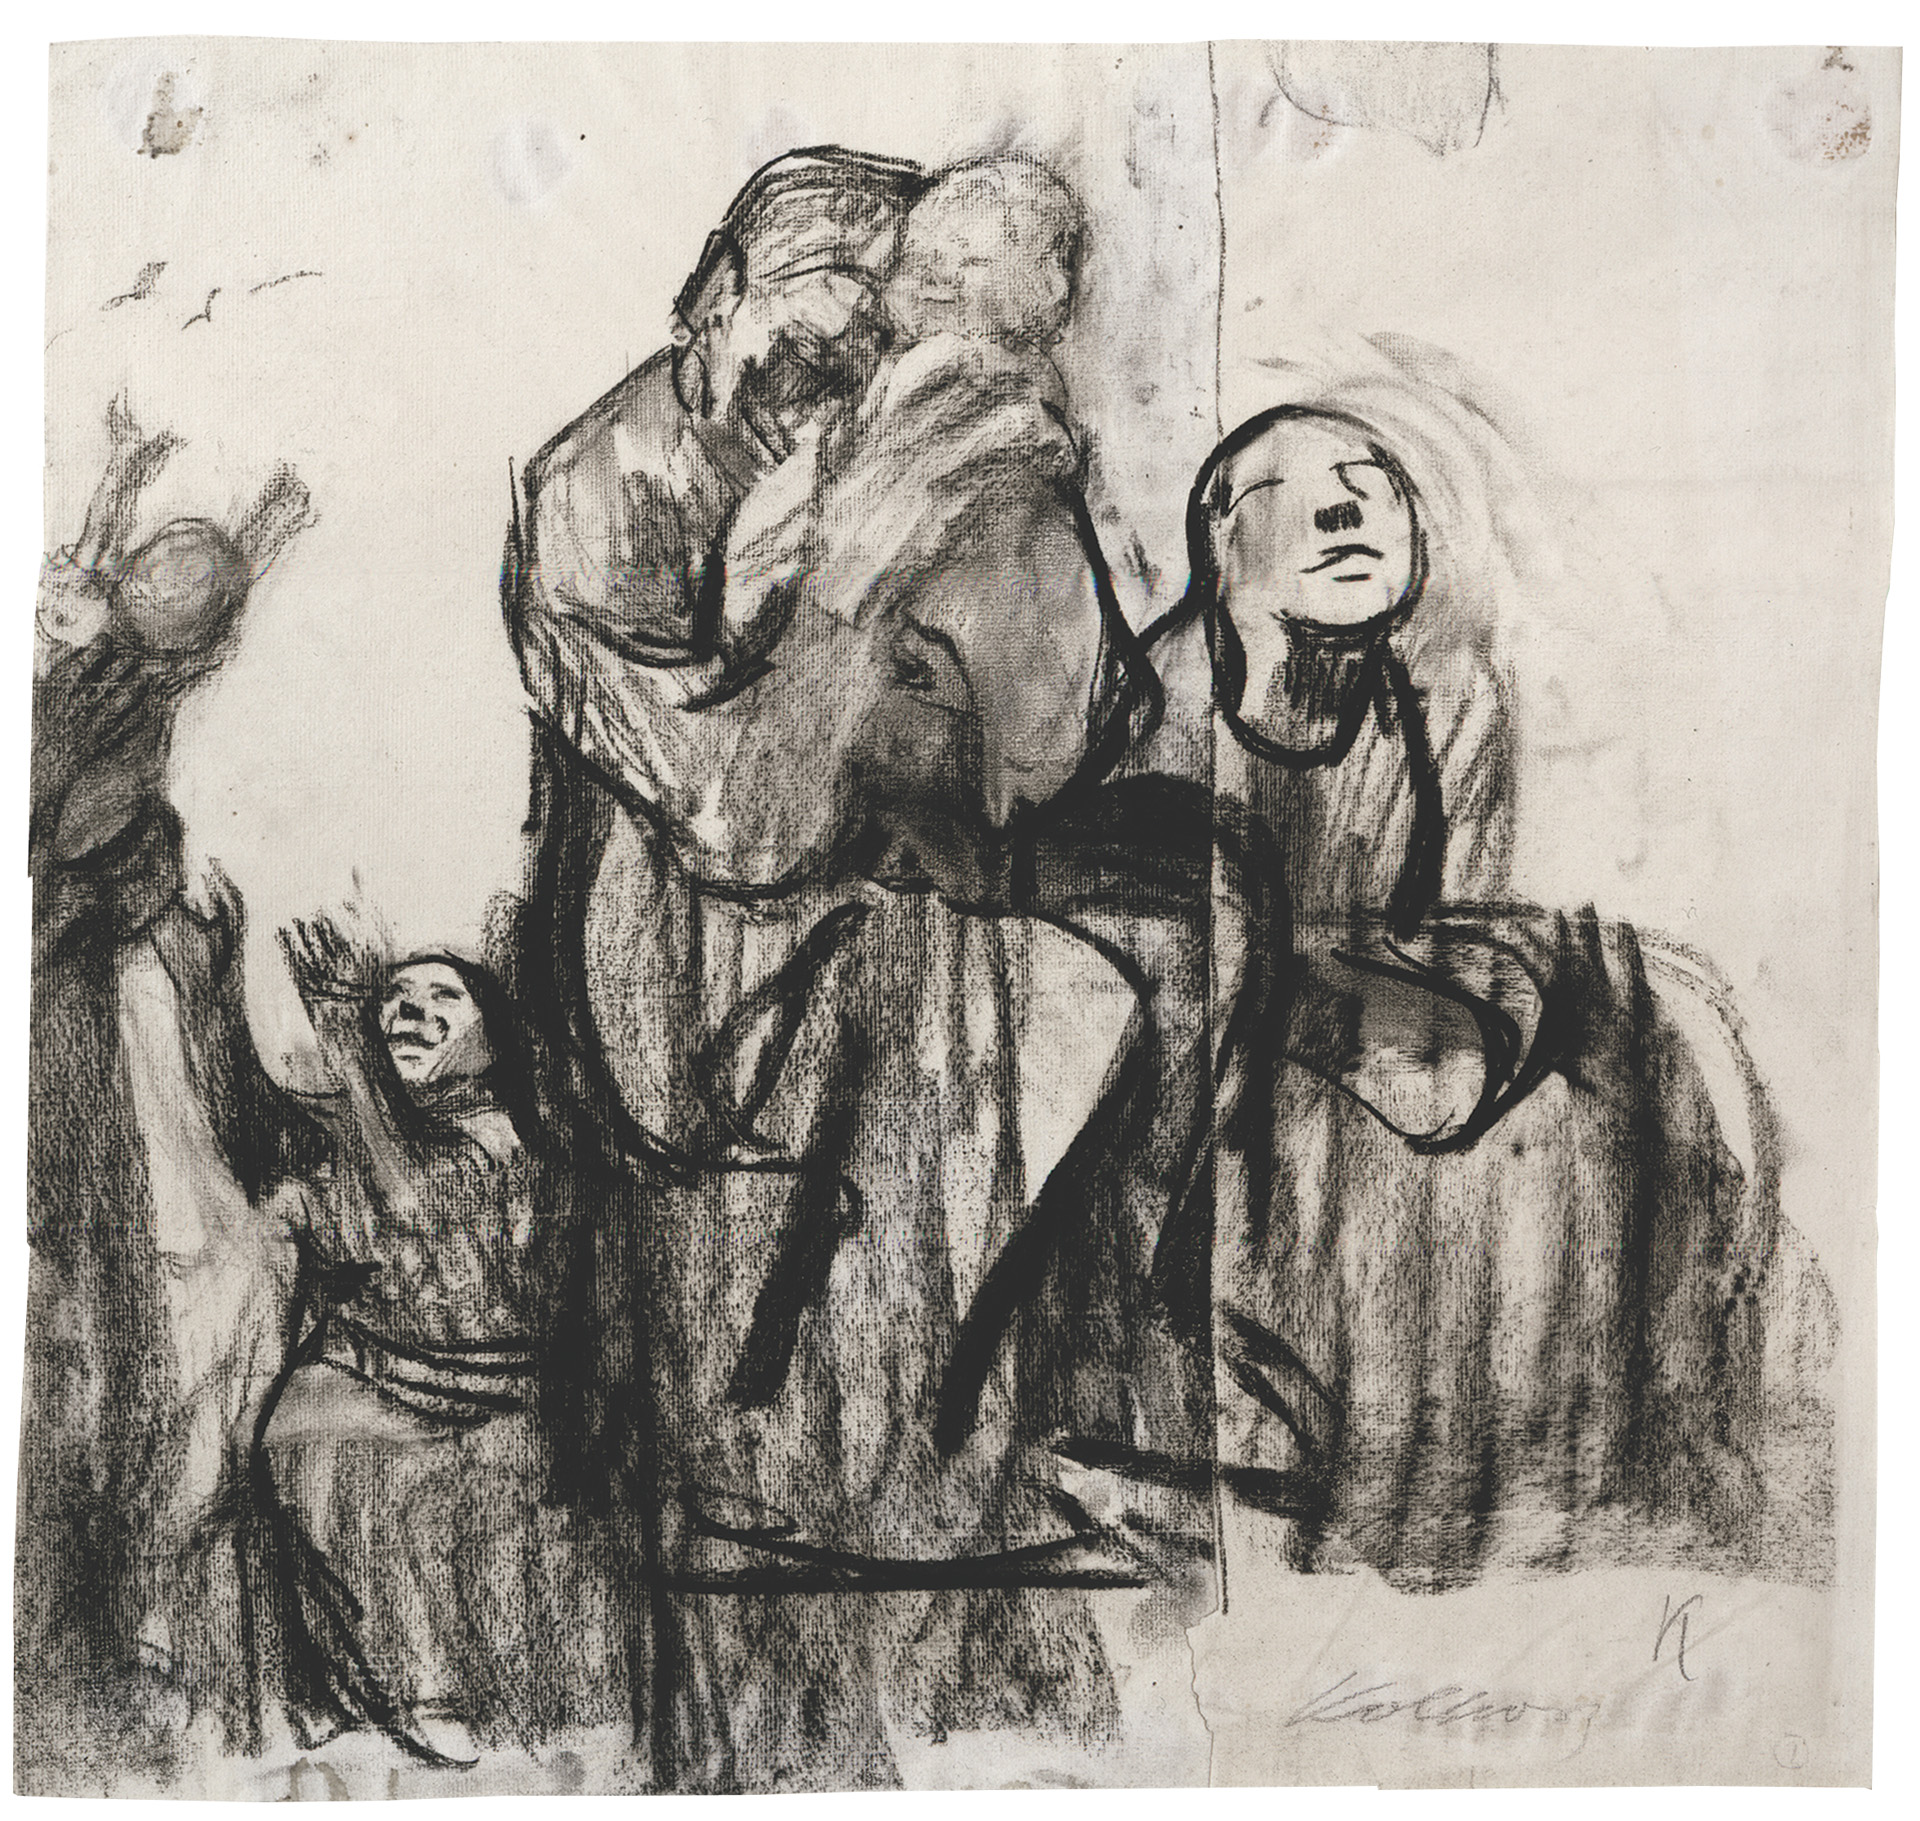 Käthe Kollwitz, Family Group, c 1928, charcoal, blotted, on Ingres paper, NT 1184, Cologne Kollwitz Collection © Käthe Kollwitz Museum Köln